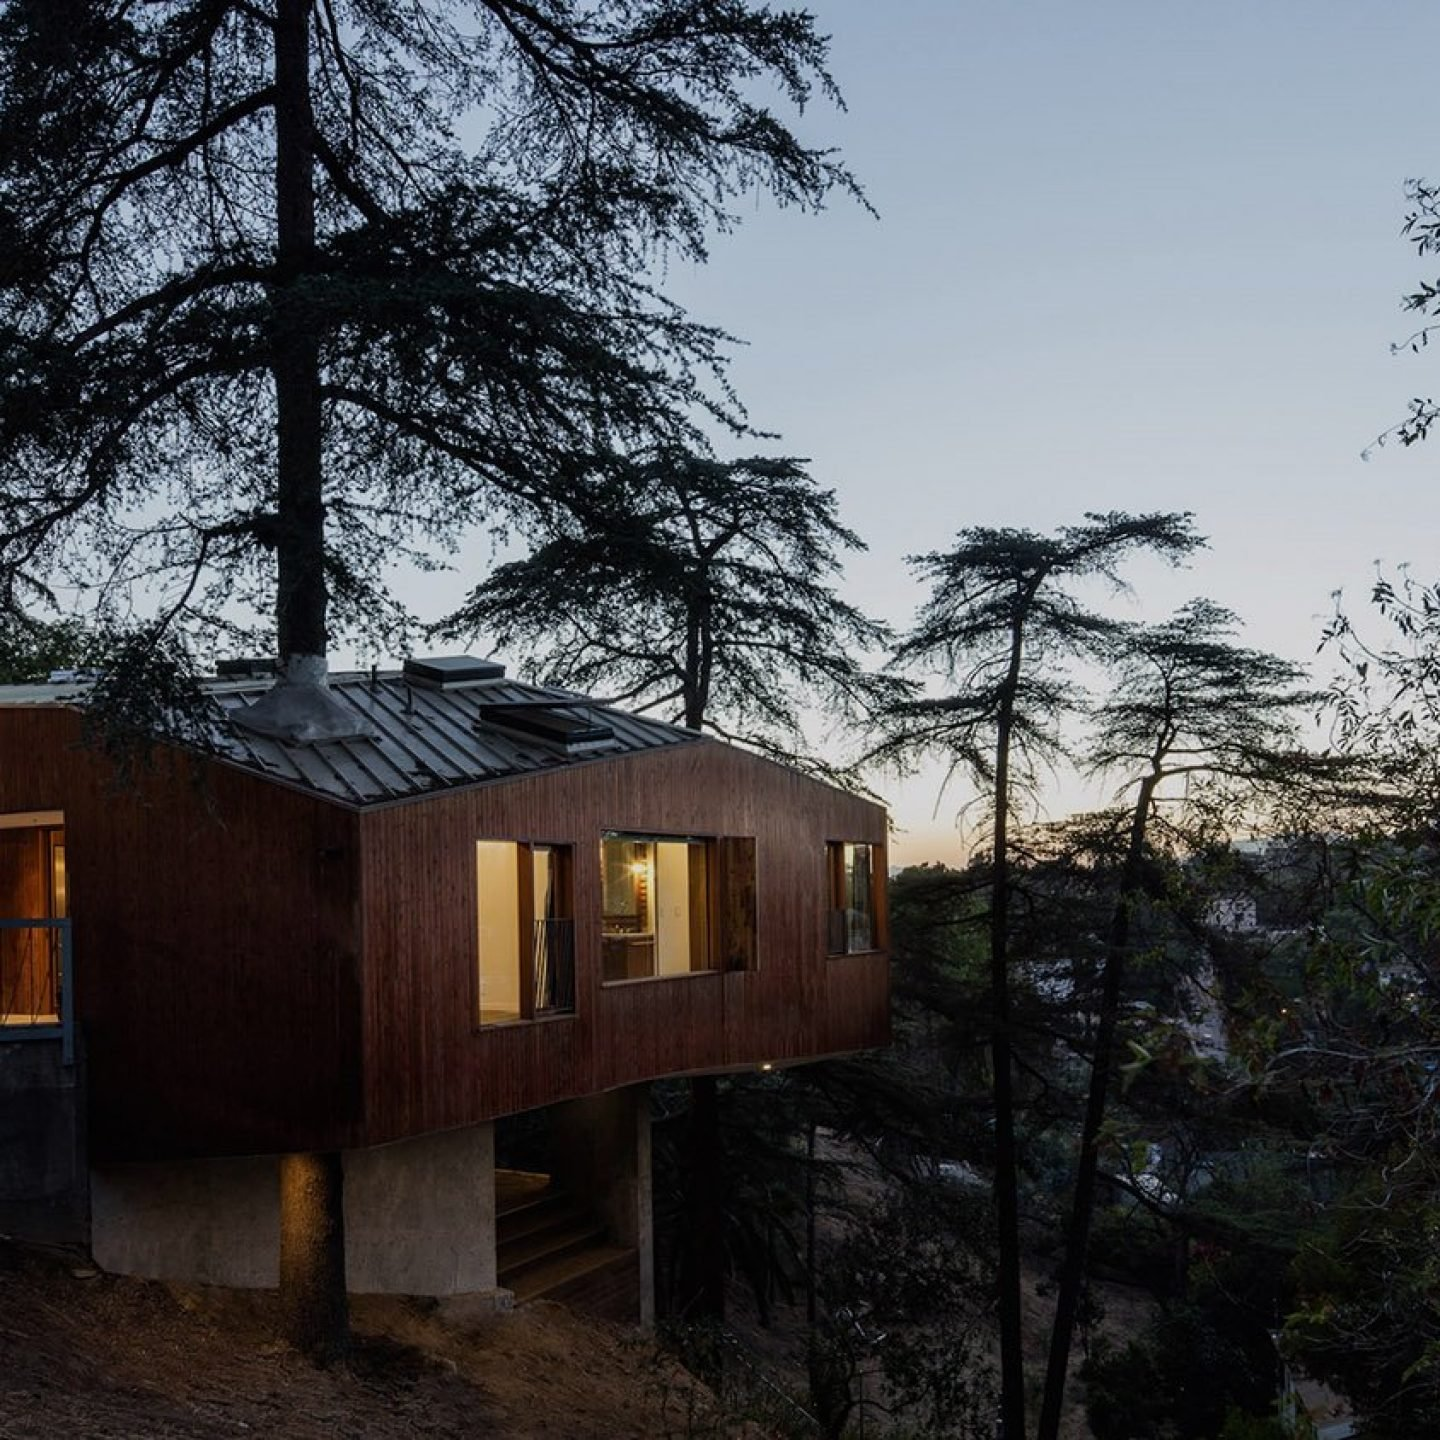 Architecture_HouseInTrees_AnonymousArchitects_7